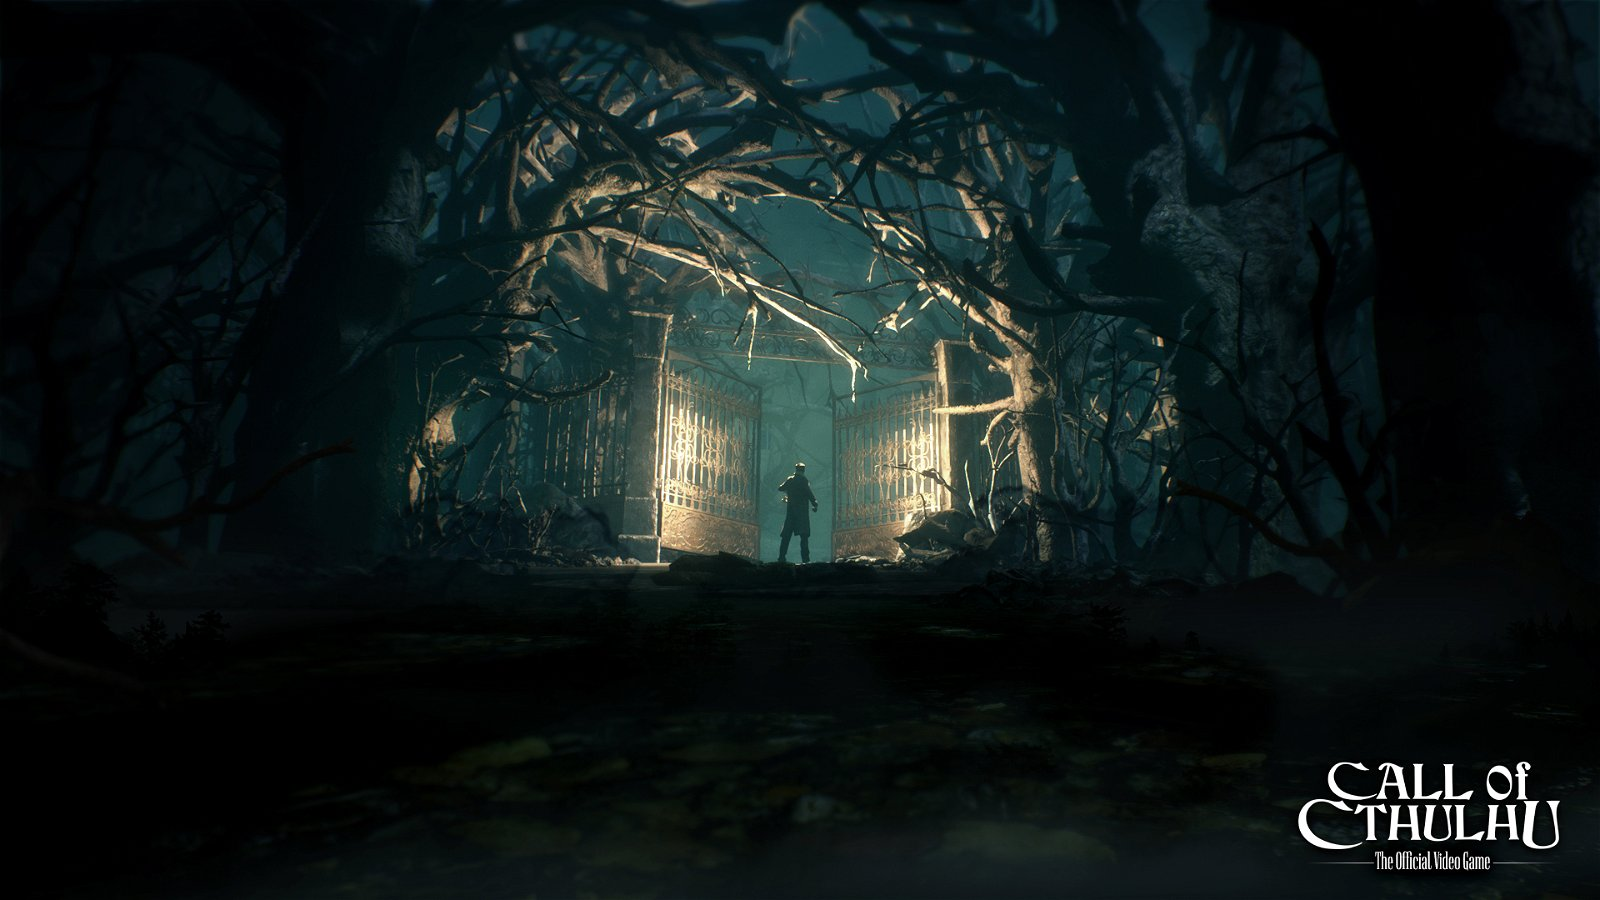 Call of Cthulhu Gets New Screenshots